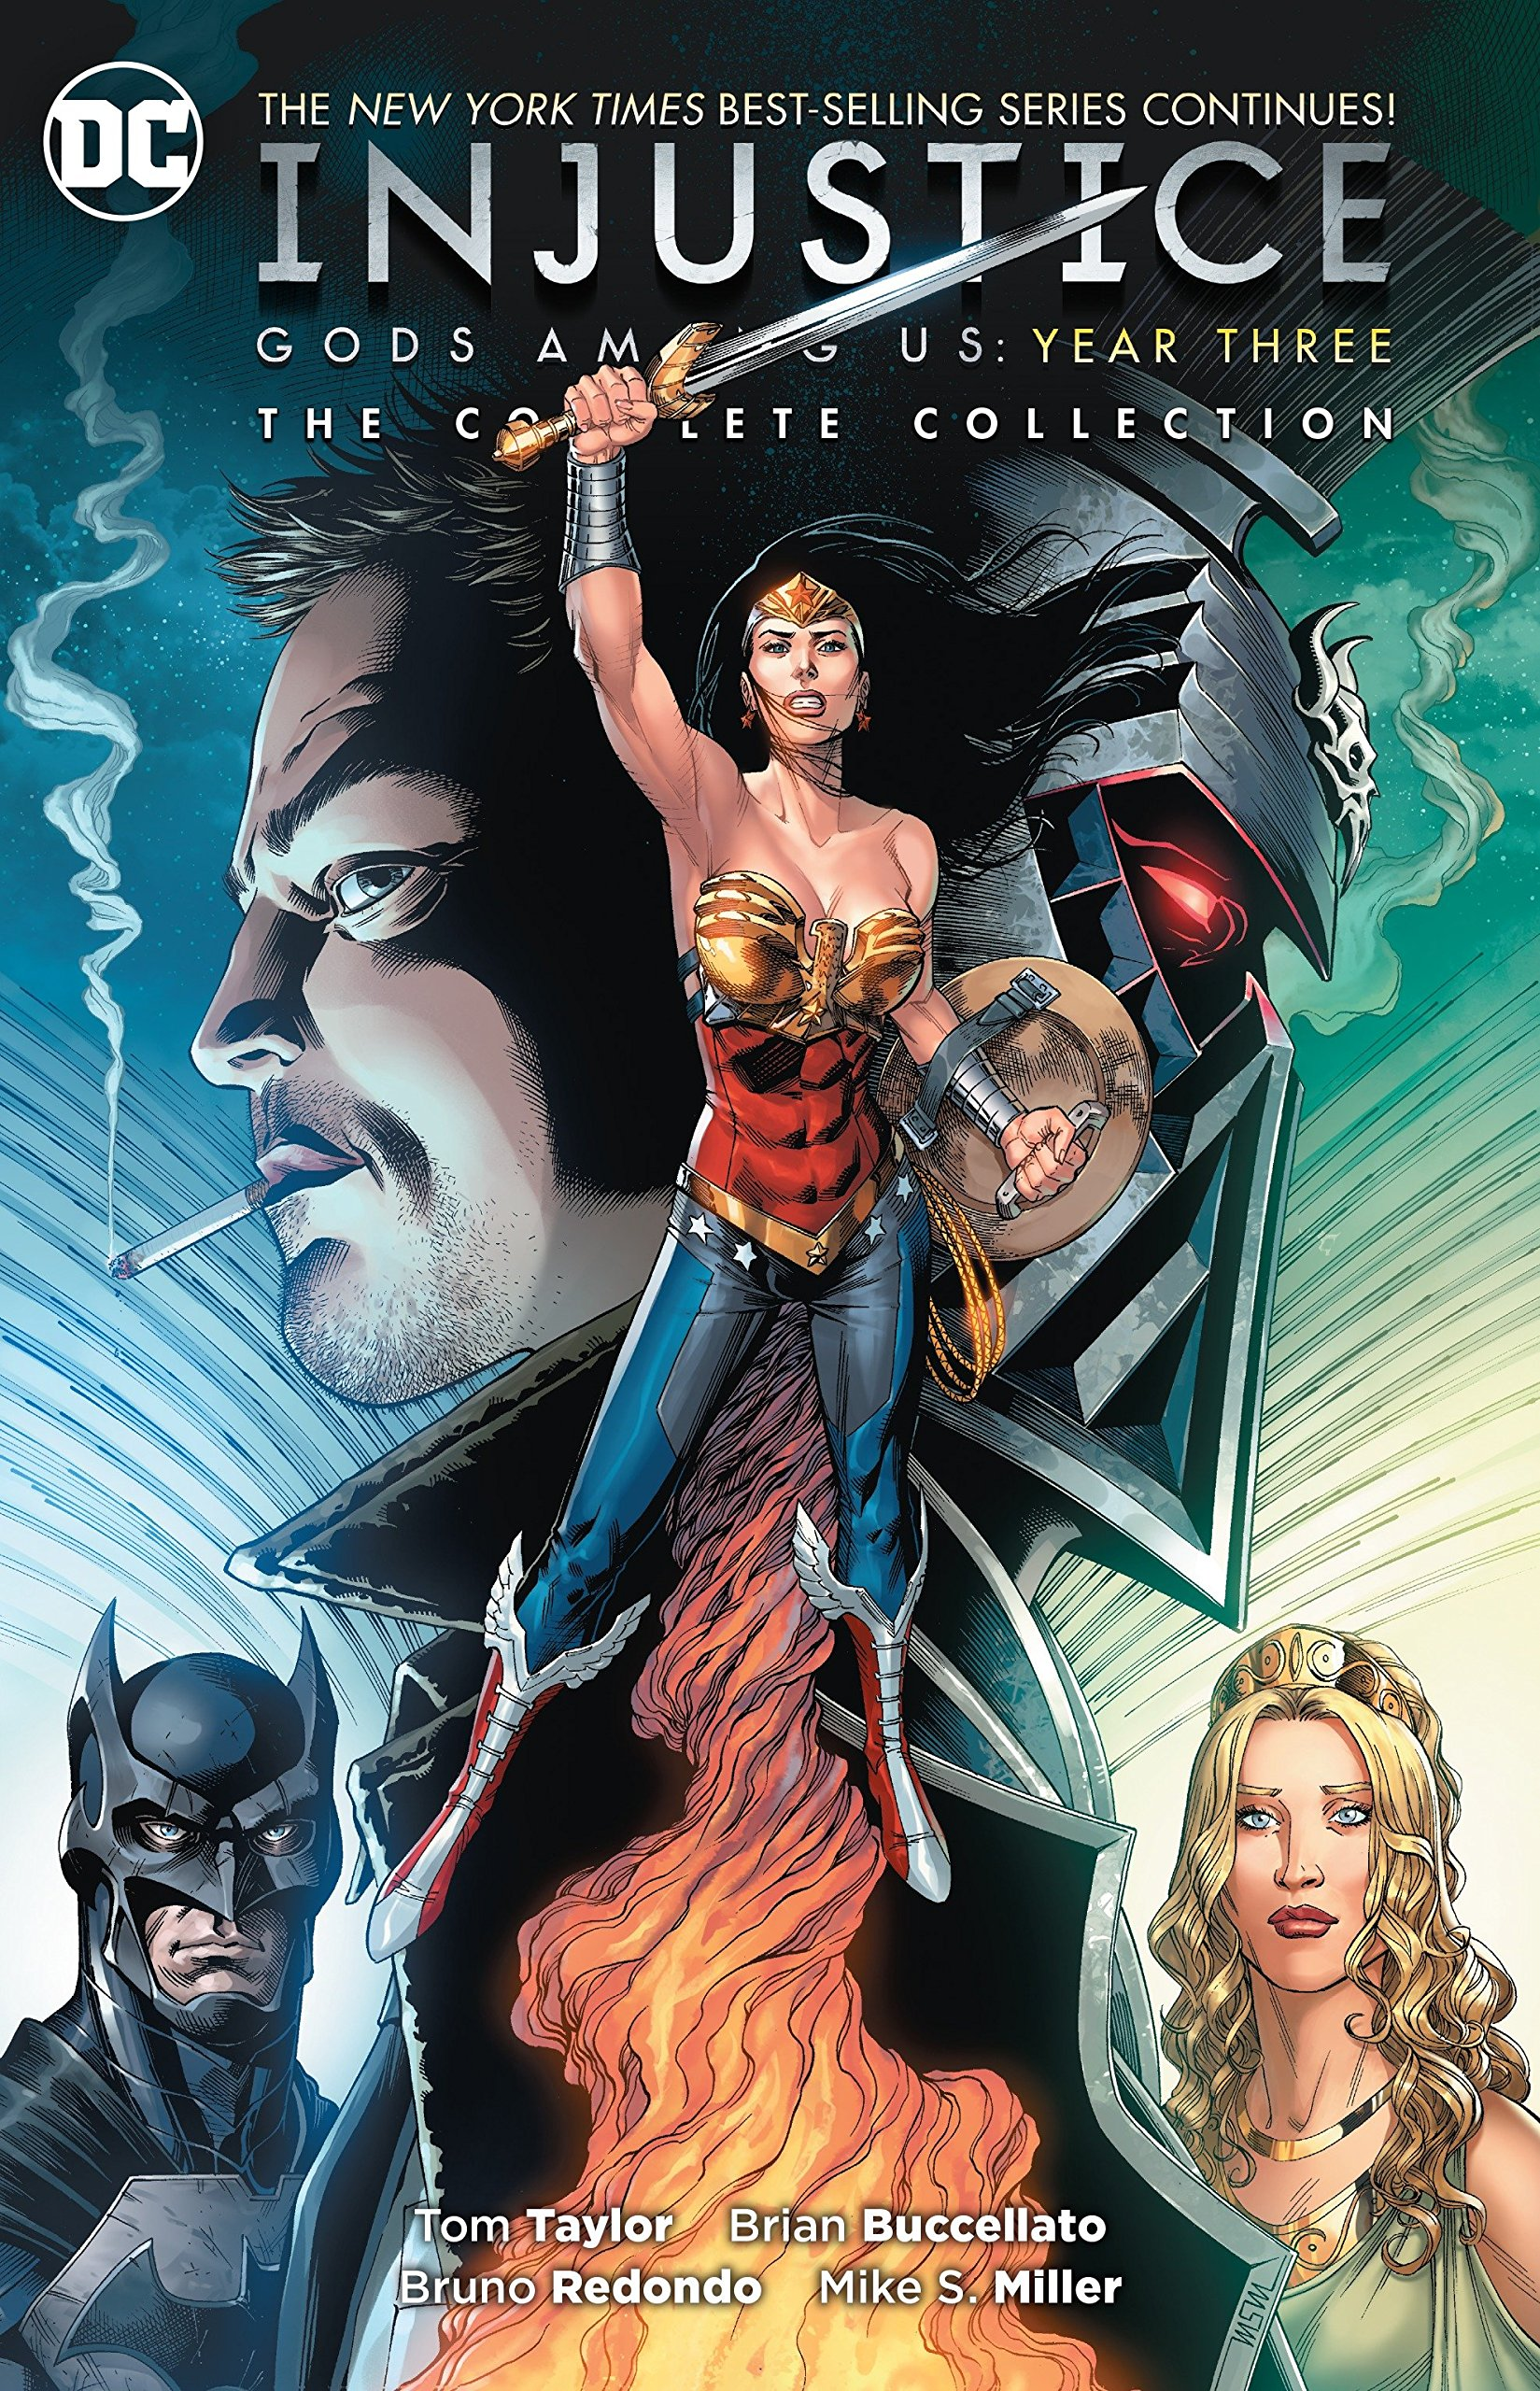 Injustice: Gods Among Us Year Three: The Complete Collection by DC Comics